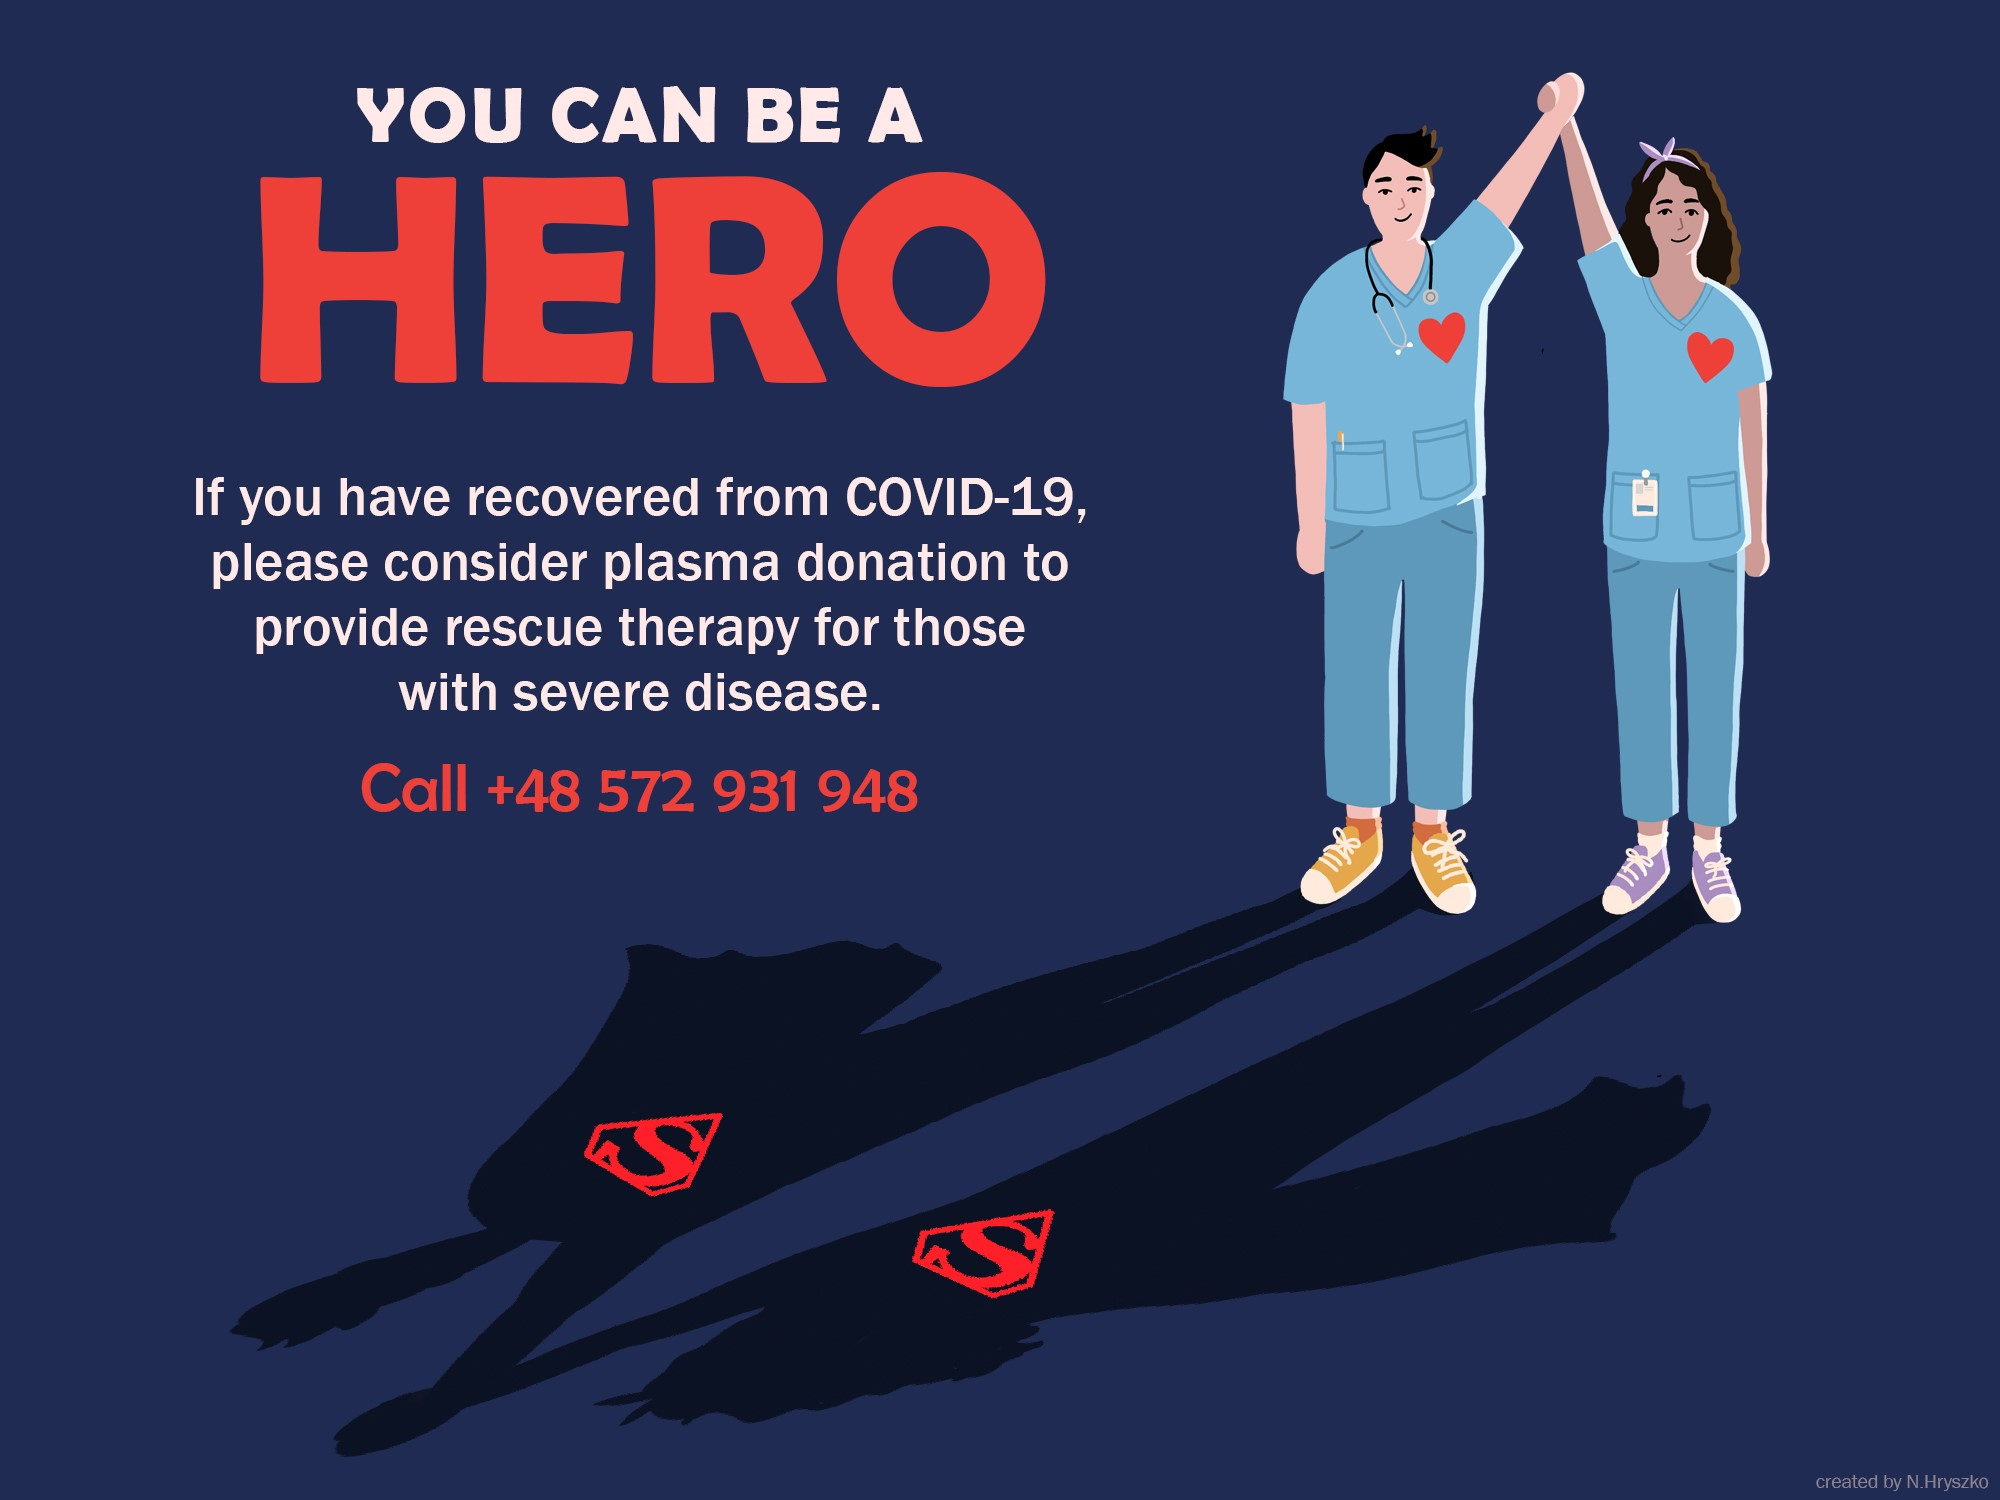 Image: Have you defeated COVID-19? Donate your plasma and help others heal